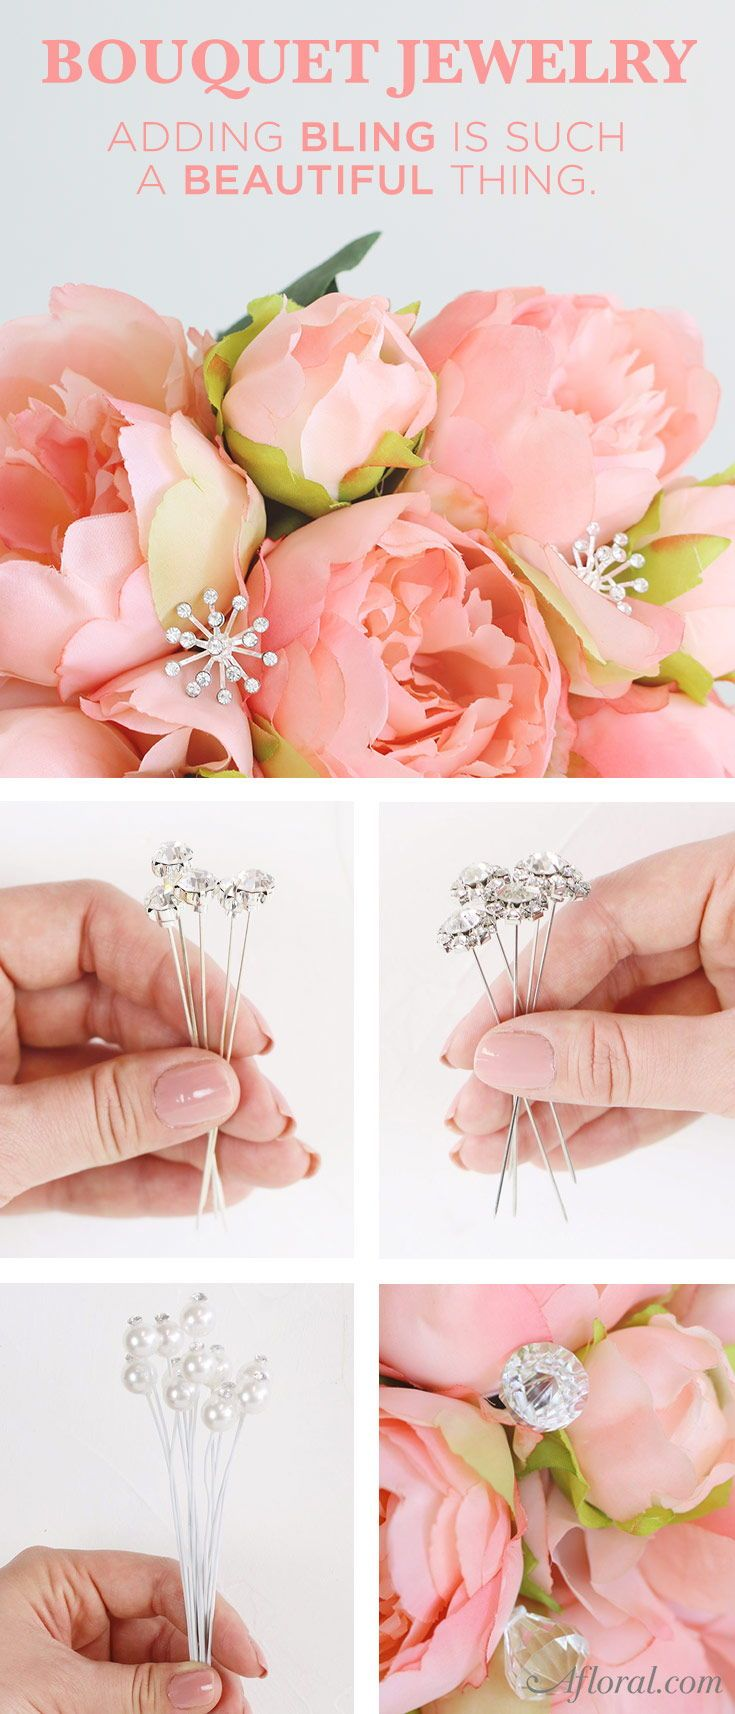 Add Jewelry To Your Wedding Bouquet In 2020 Flower Bouquet